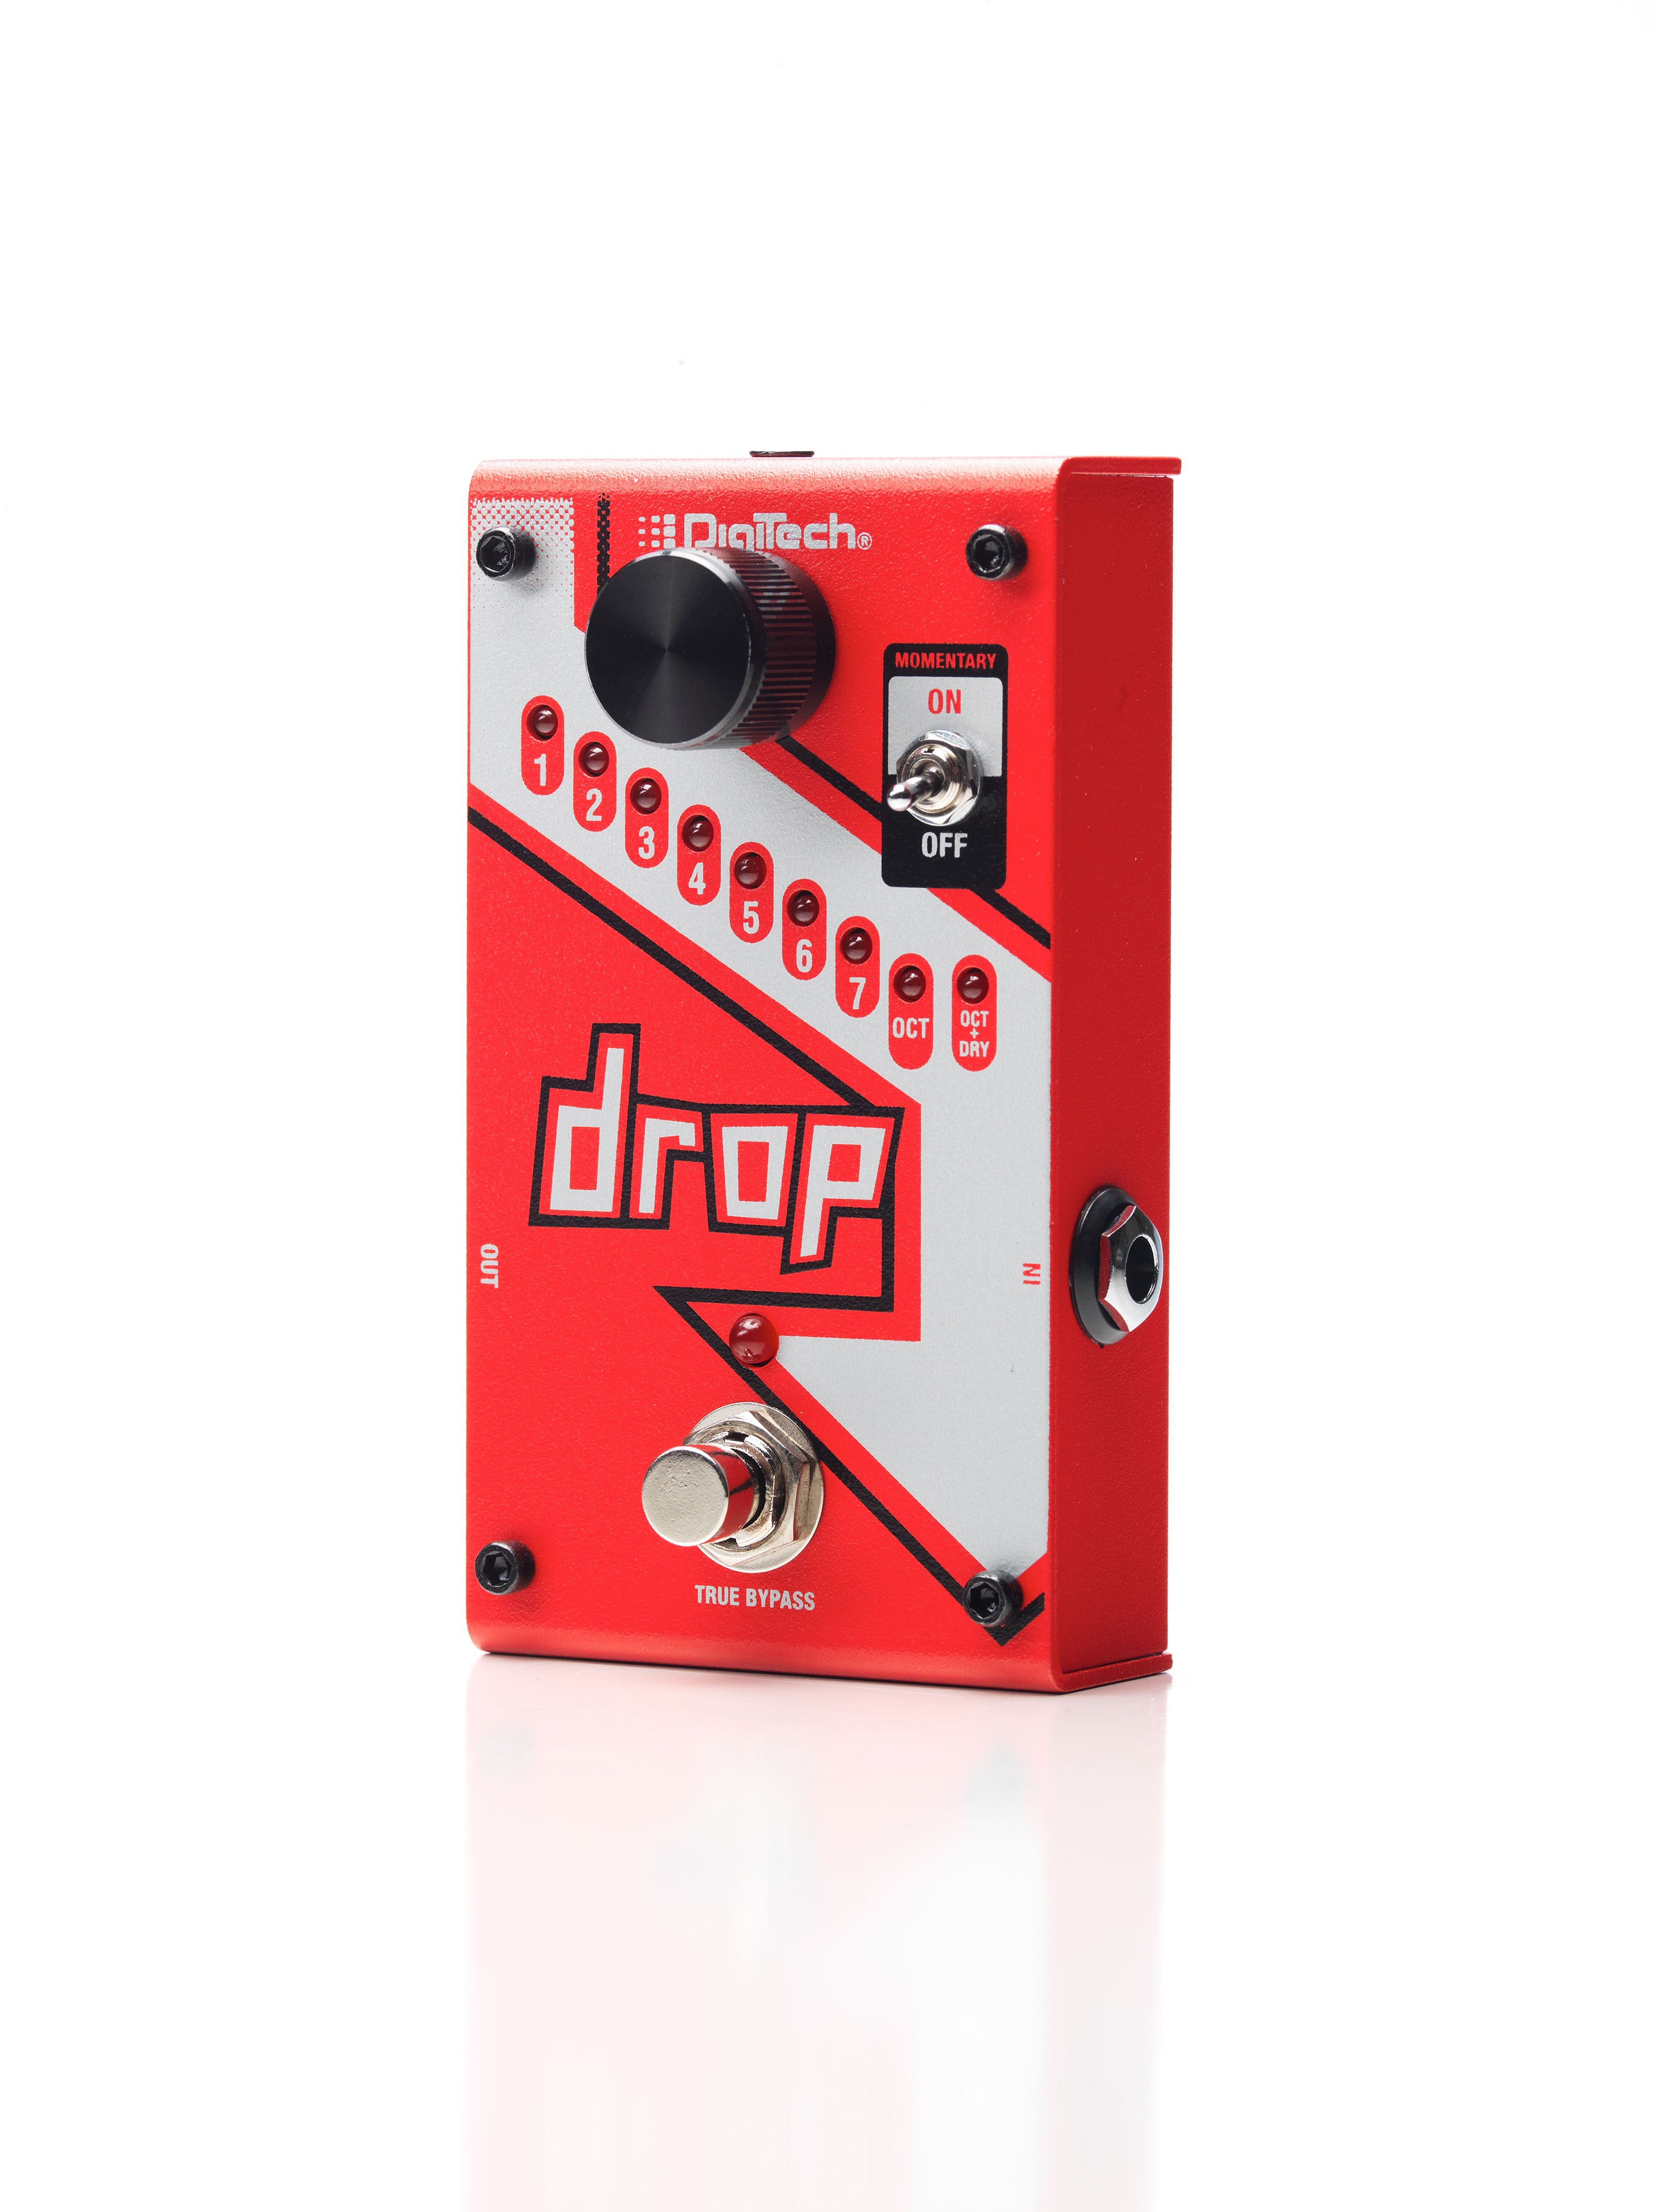 The Drop Digitech Guitar Effects This Page Standard Tuning String Notes Diagram Polyphonic Tune Pedal